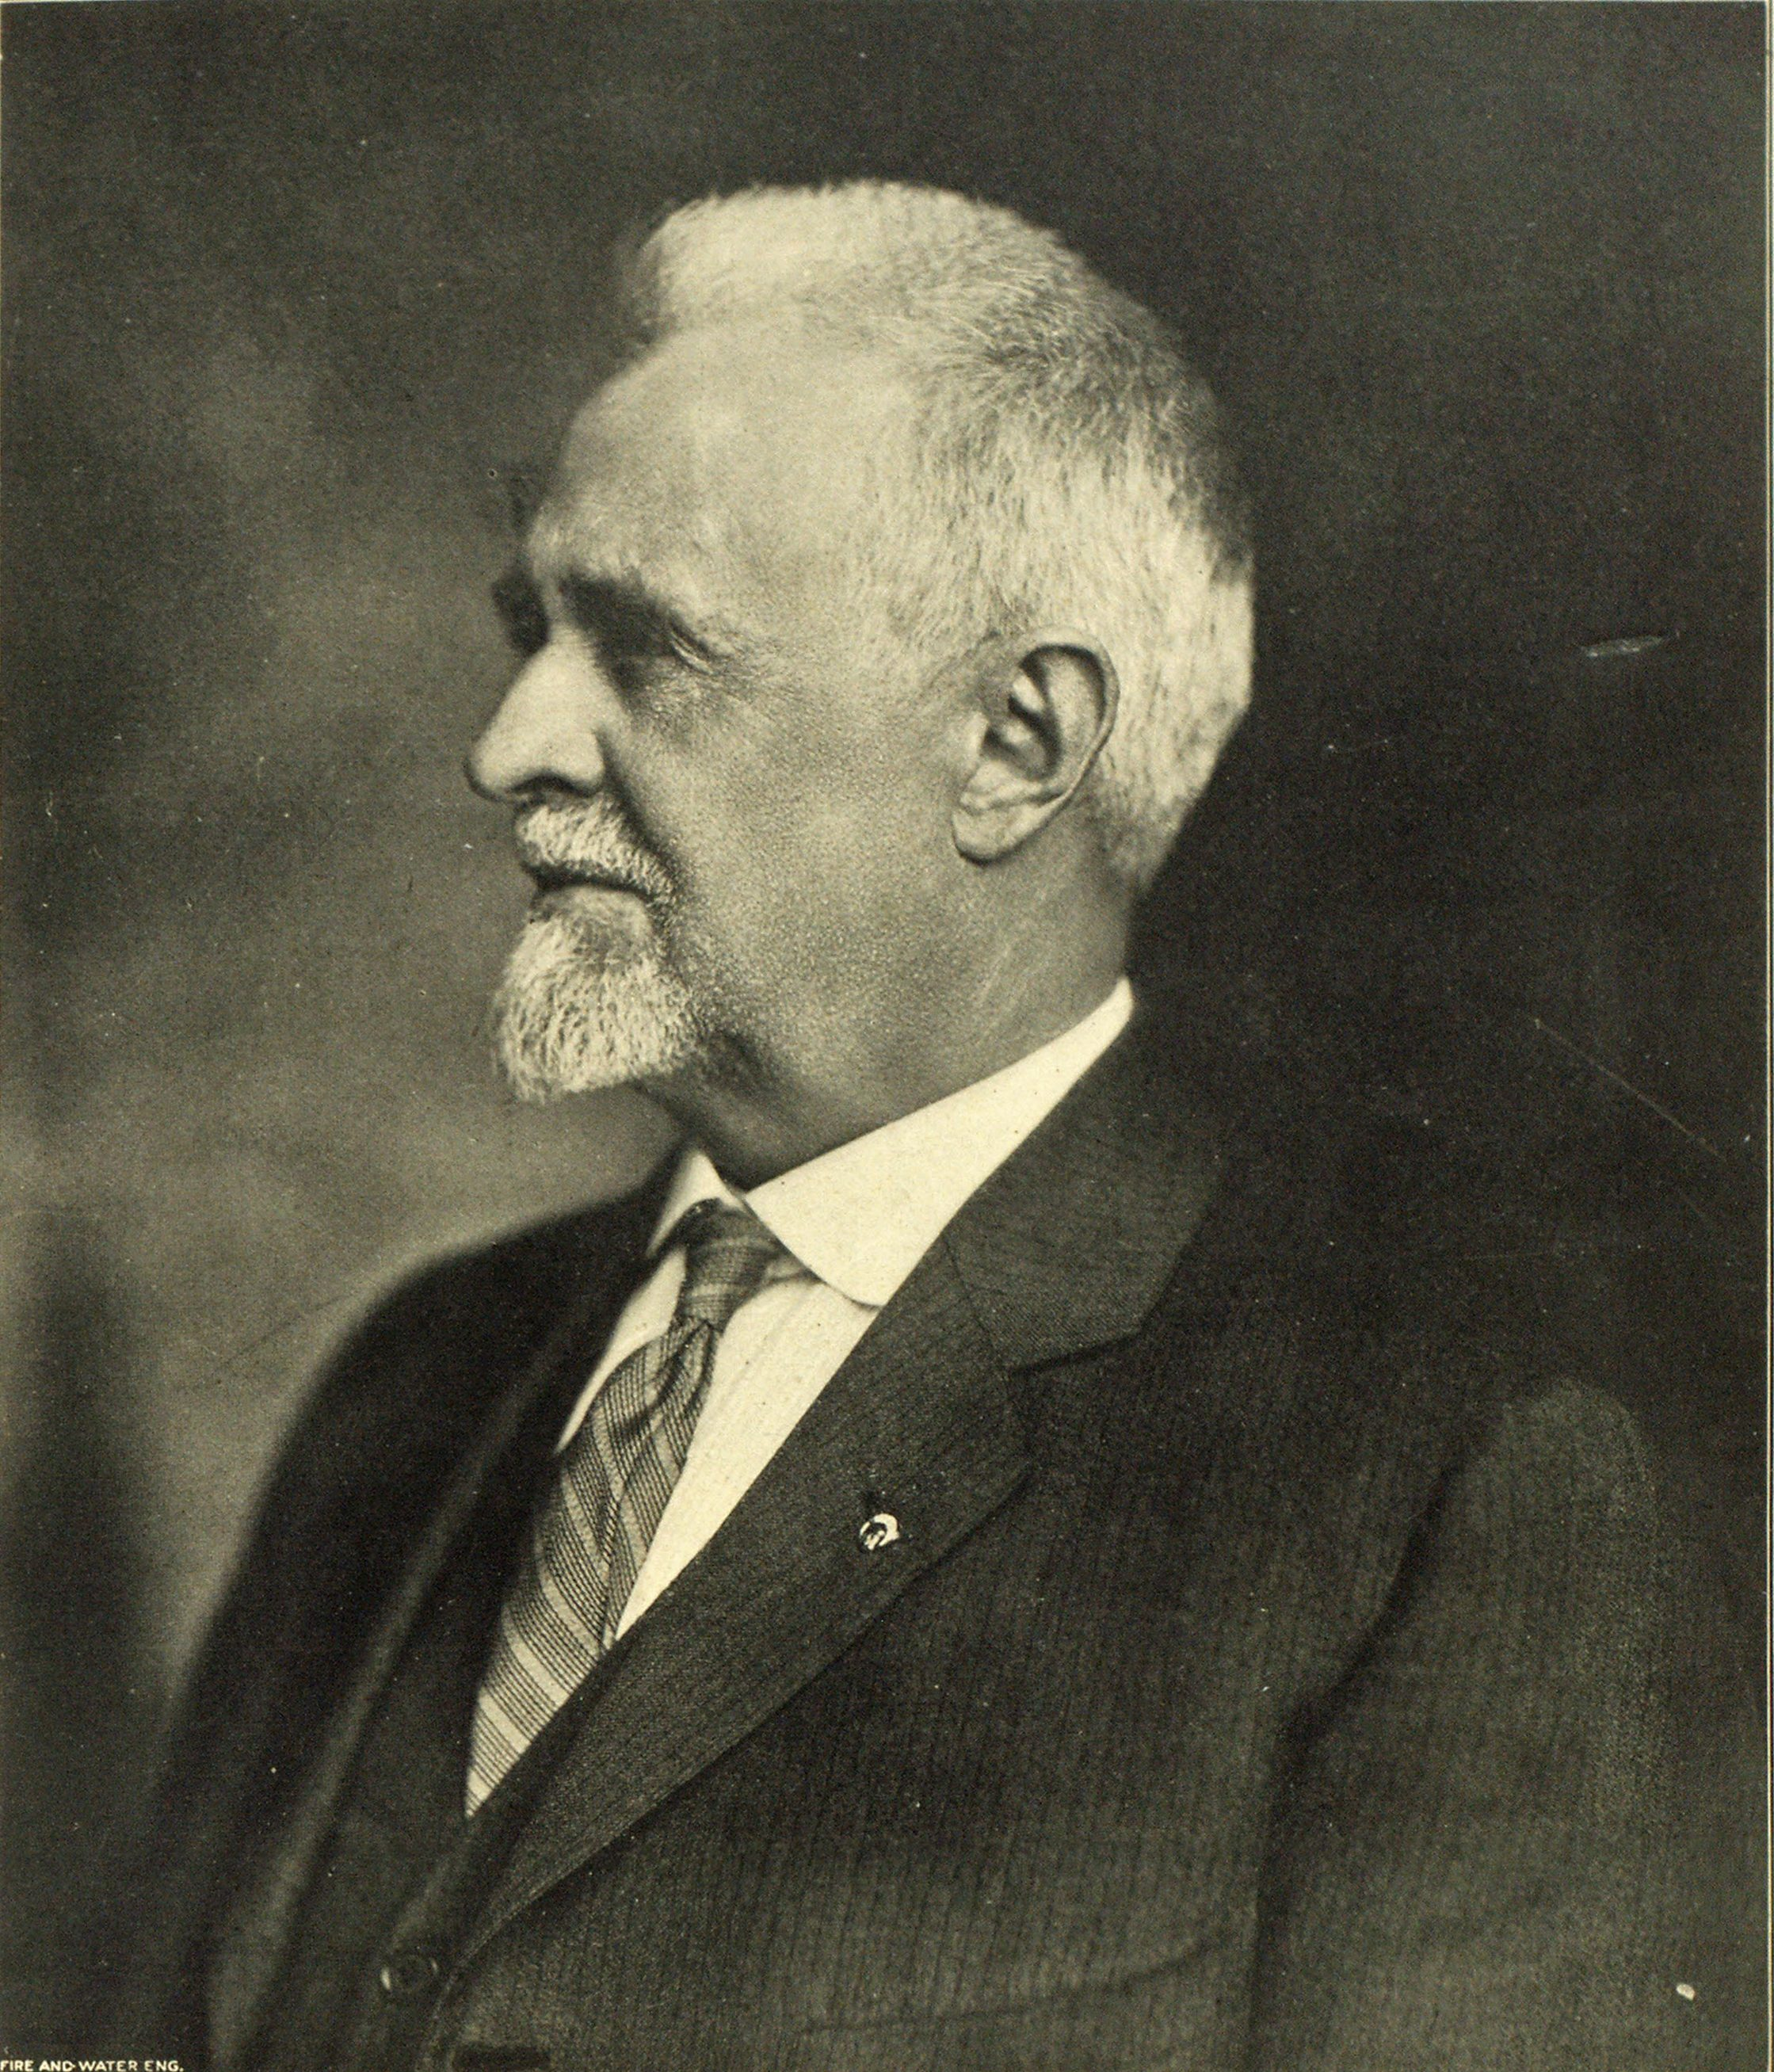 JOHN M. DIVEN Who Has Served the American Water Works Association for Twenty-Four Years, in the following capacities: President, 1891-92; Secretary and Treasurer, 1902-12; Secretary and Editor, 1913-16; Secretary, 1917-24, and Secretary Emeritus, 1924. A Banquet in His Honor Will Be One of the Features of The American Water Works Convention.